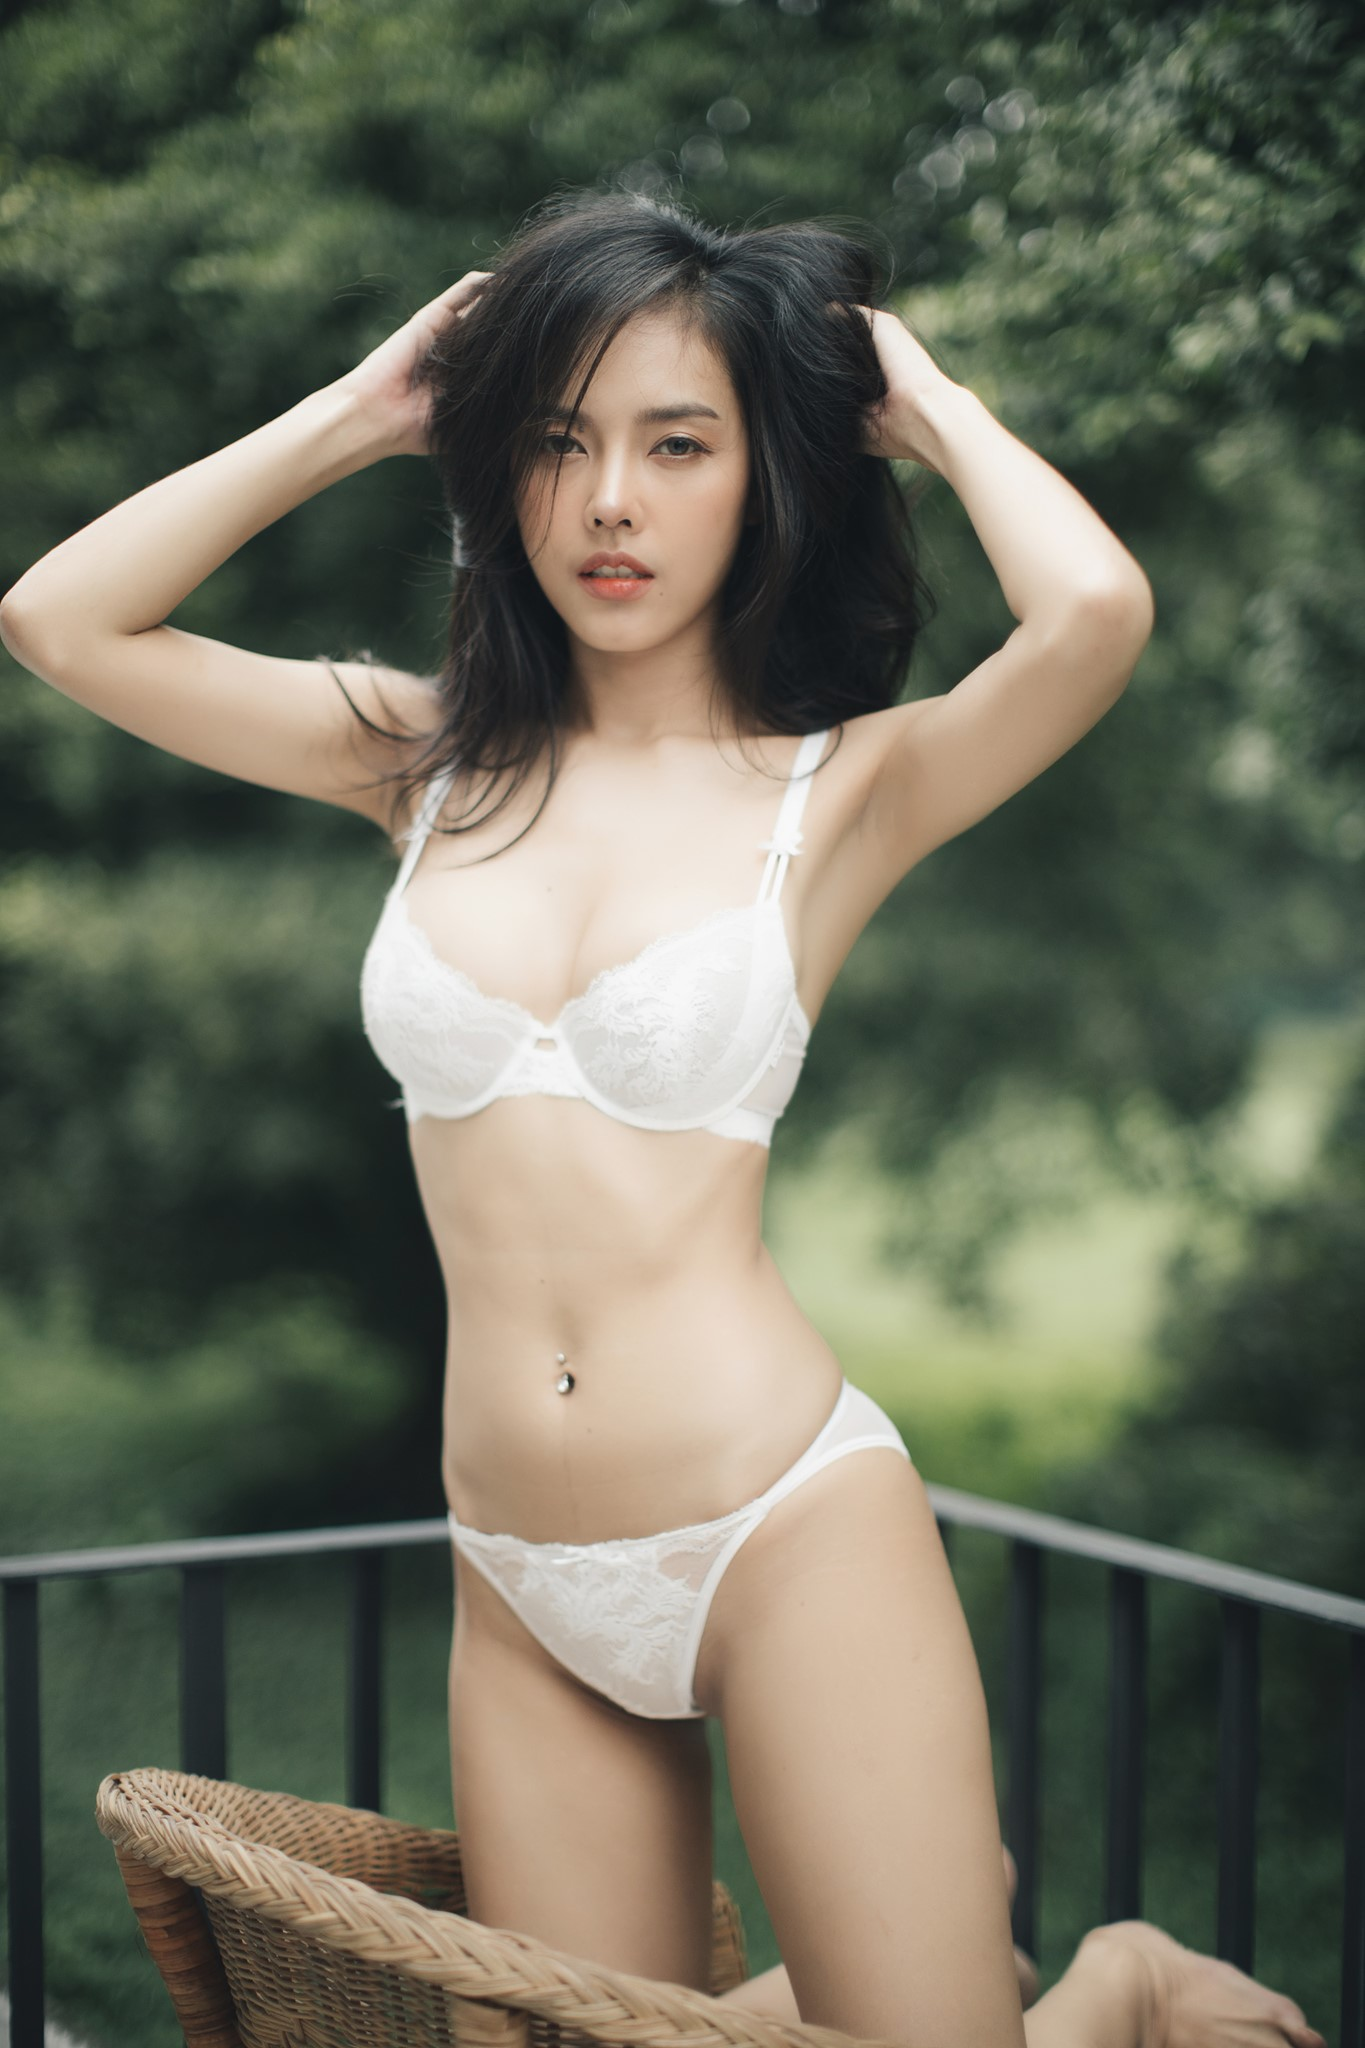 cool Asian girl wearing lingerie